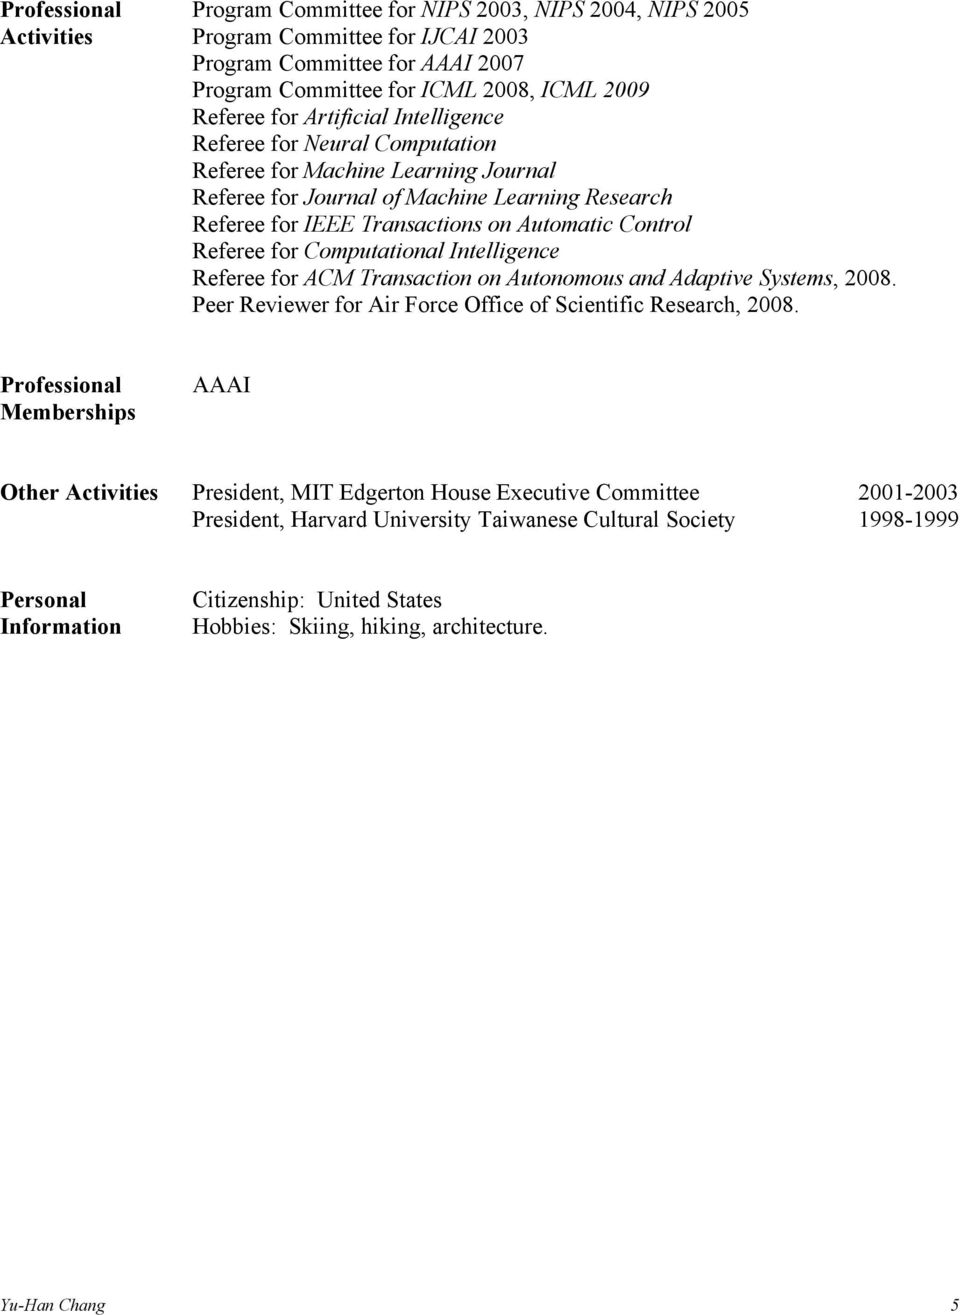 for Computational Intelligence Referee for ACM Transaction on Autonomous and Adaptive Systems, 2008. Peer Reviewer for Air Force Office of Scientific Research, 2008.